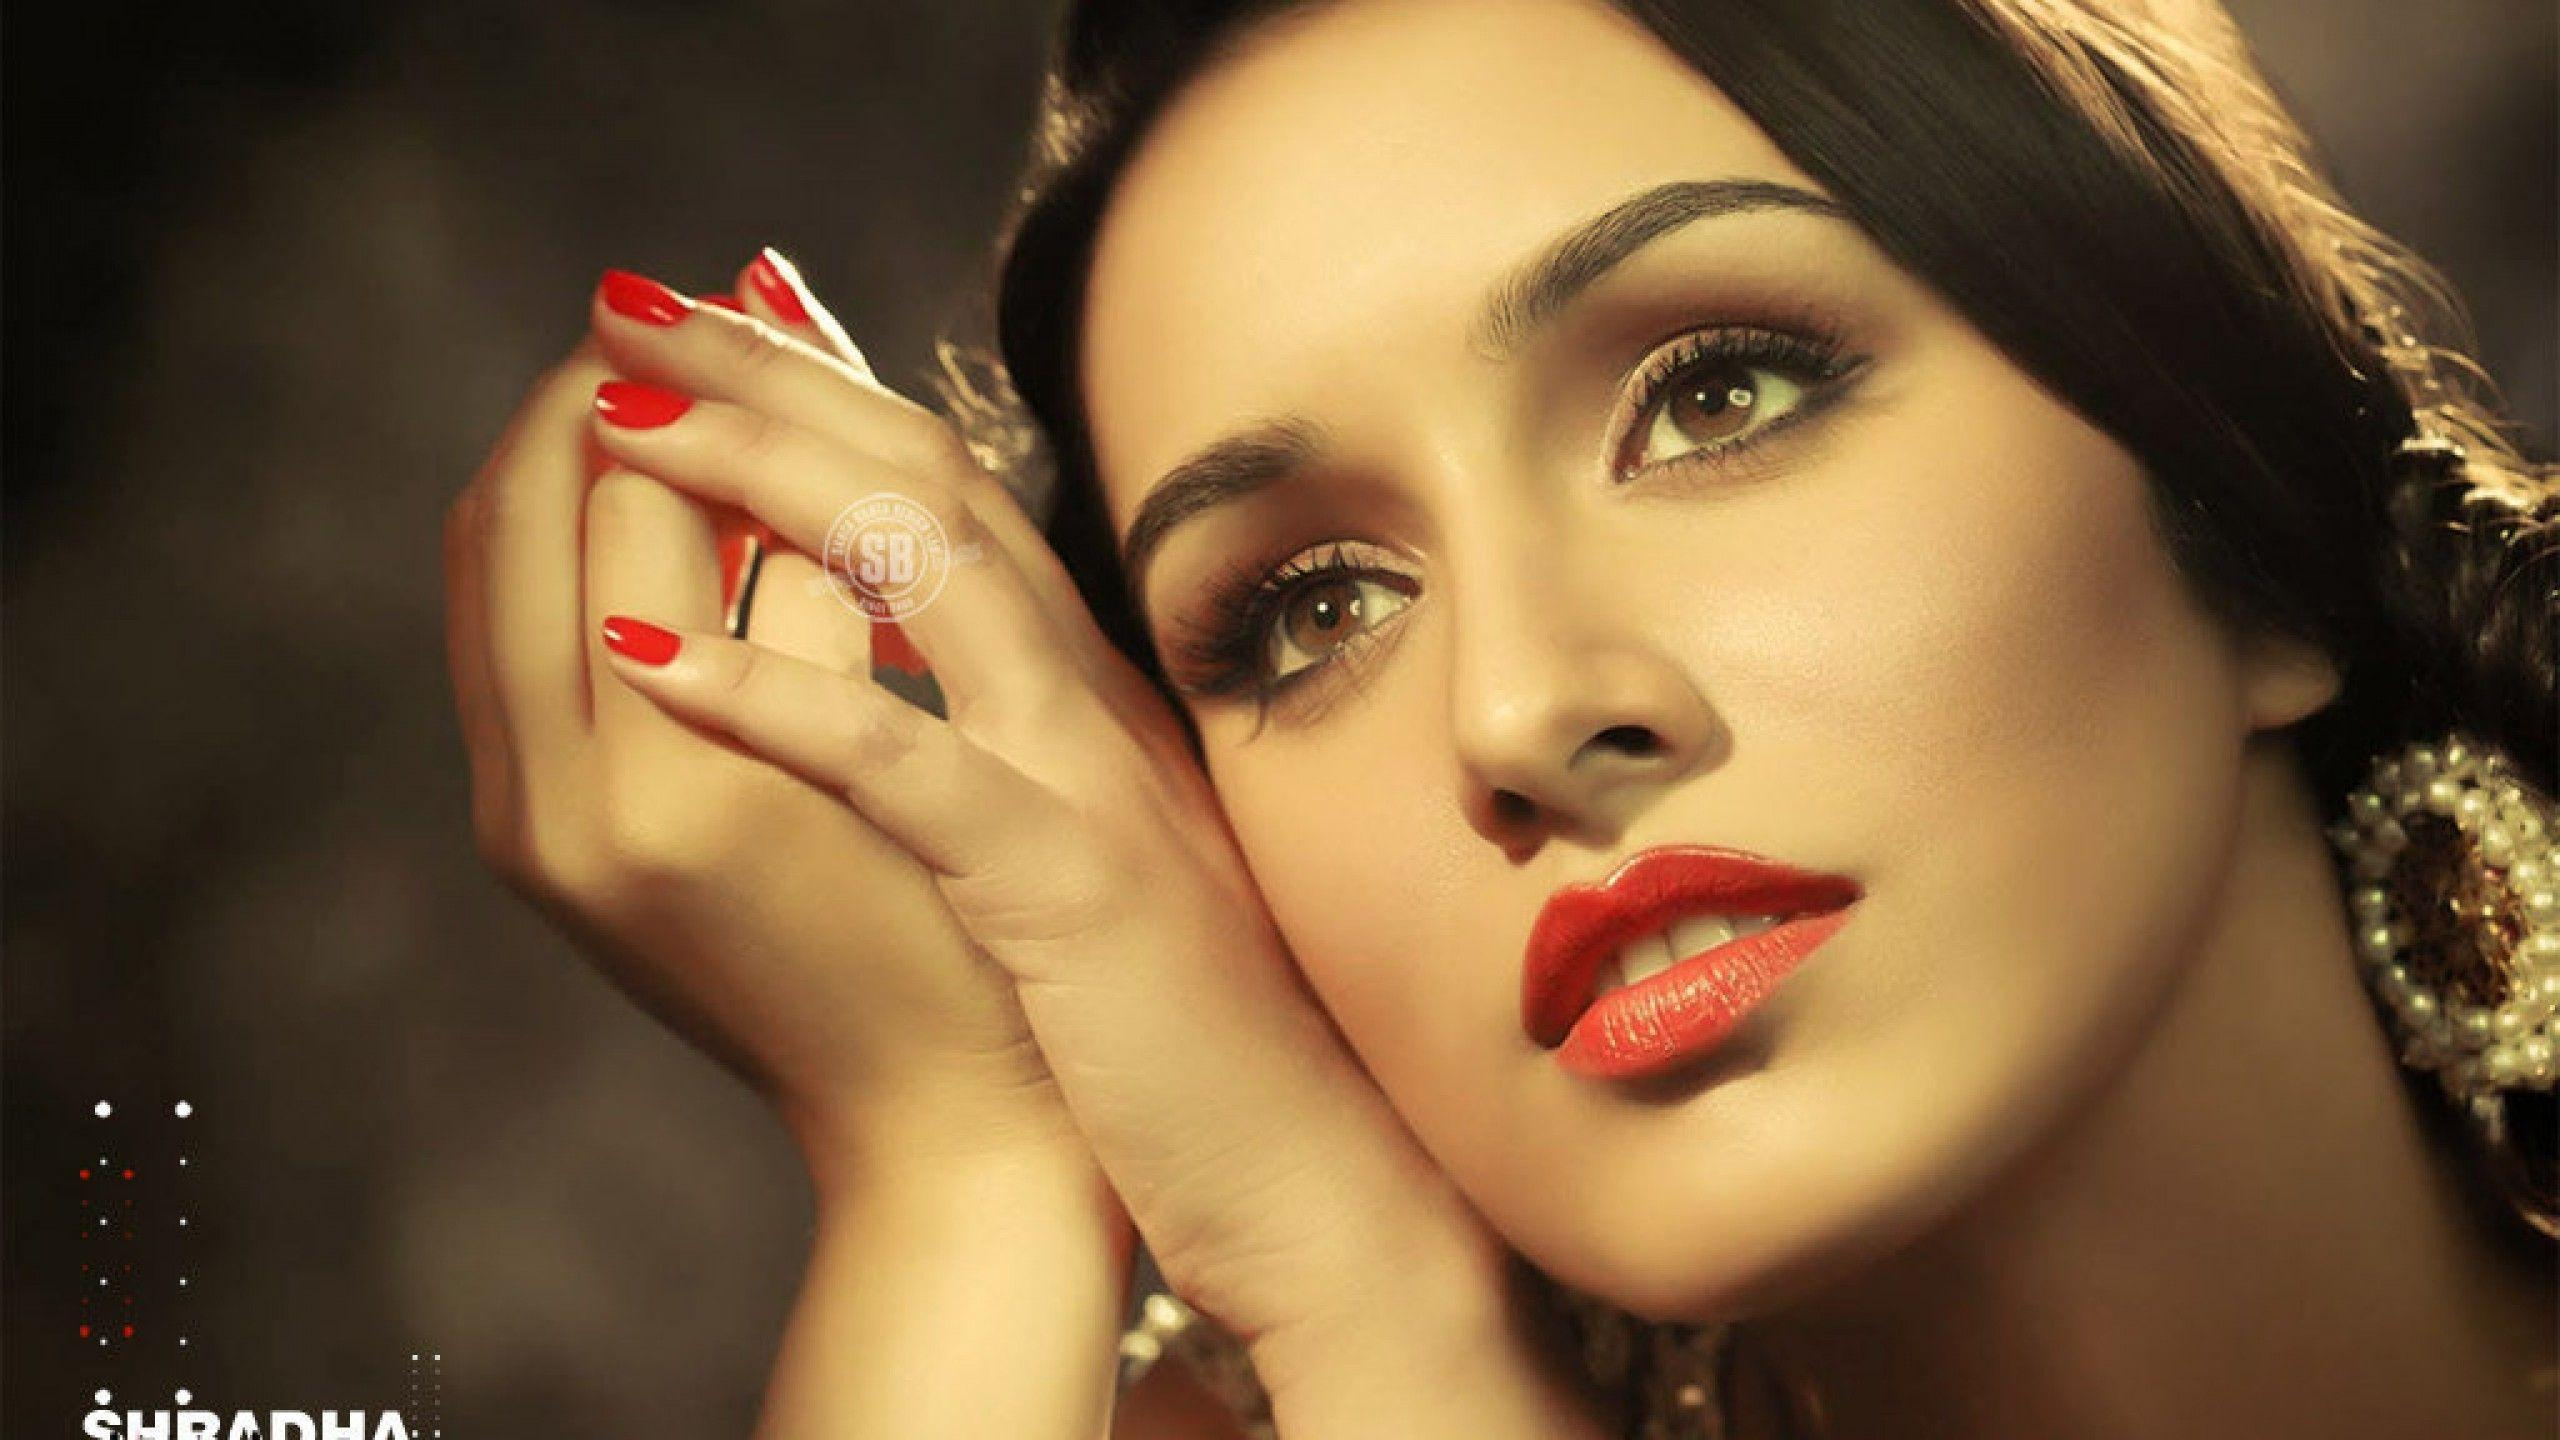 10 Best Shraddha Kapoor Hd Wallpapers FULL HD 1080p For PC